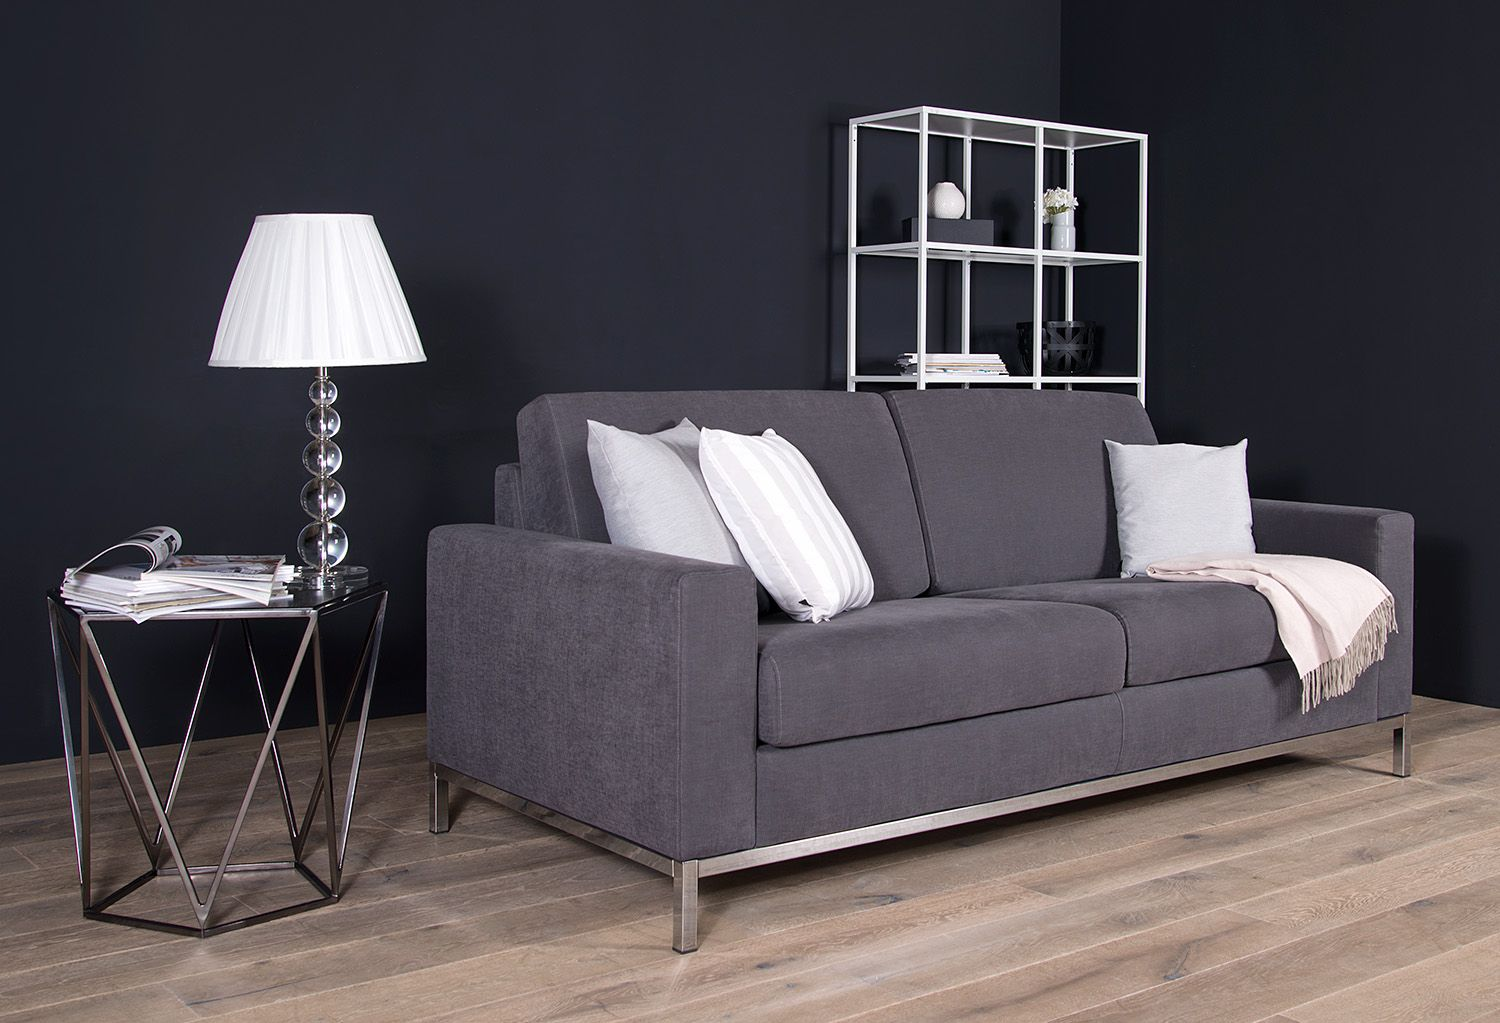 Sofaecke Excellent Full Size Of Ideen Big Sofa Ecke Besten Sofas Schlafsofa Oder Bett Fabulous Sofa Bett Buckle Up With